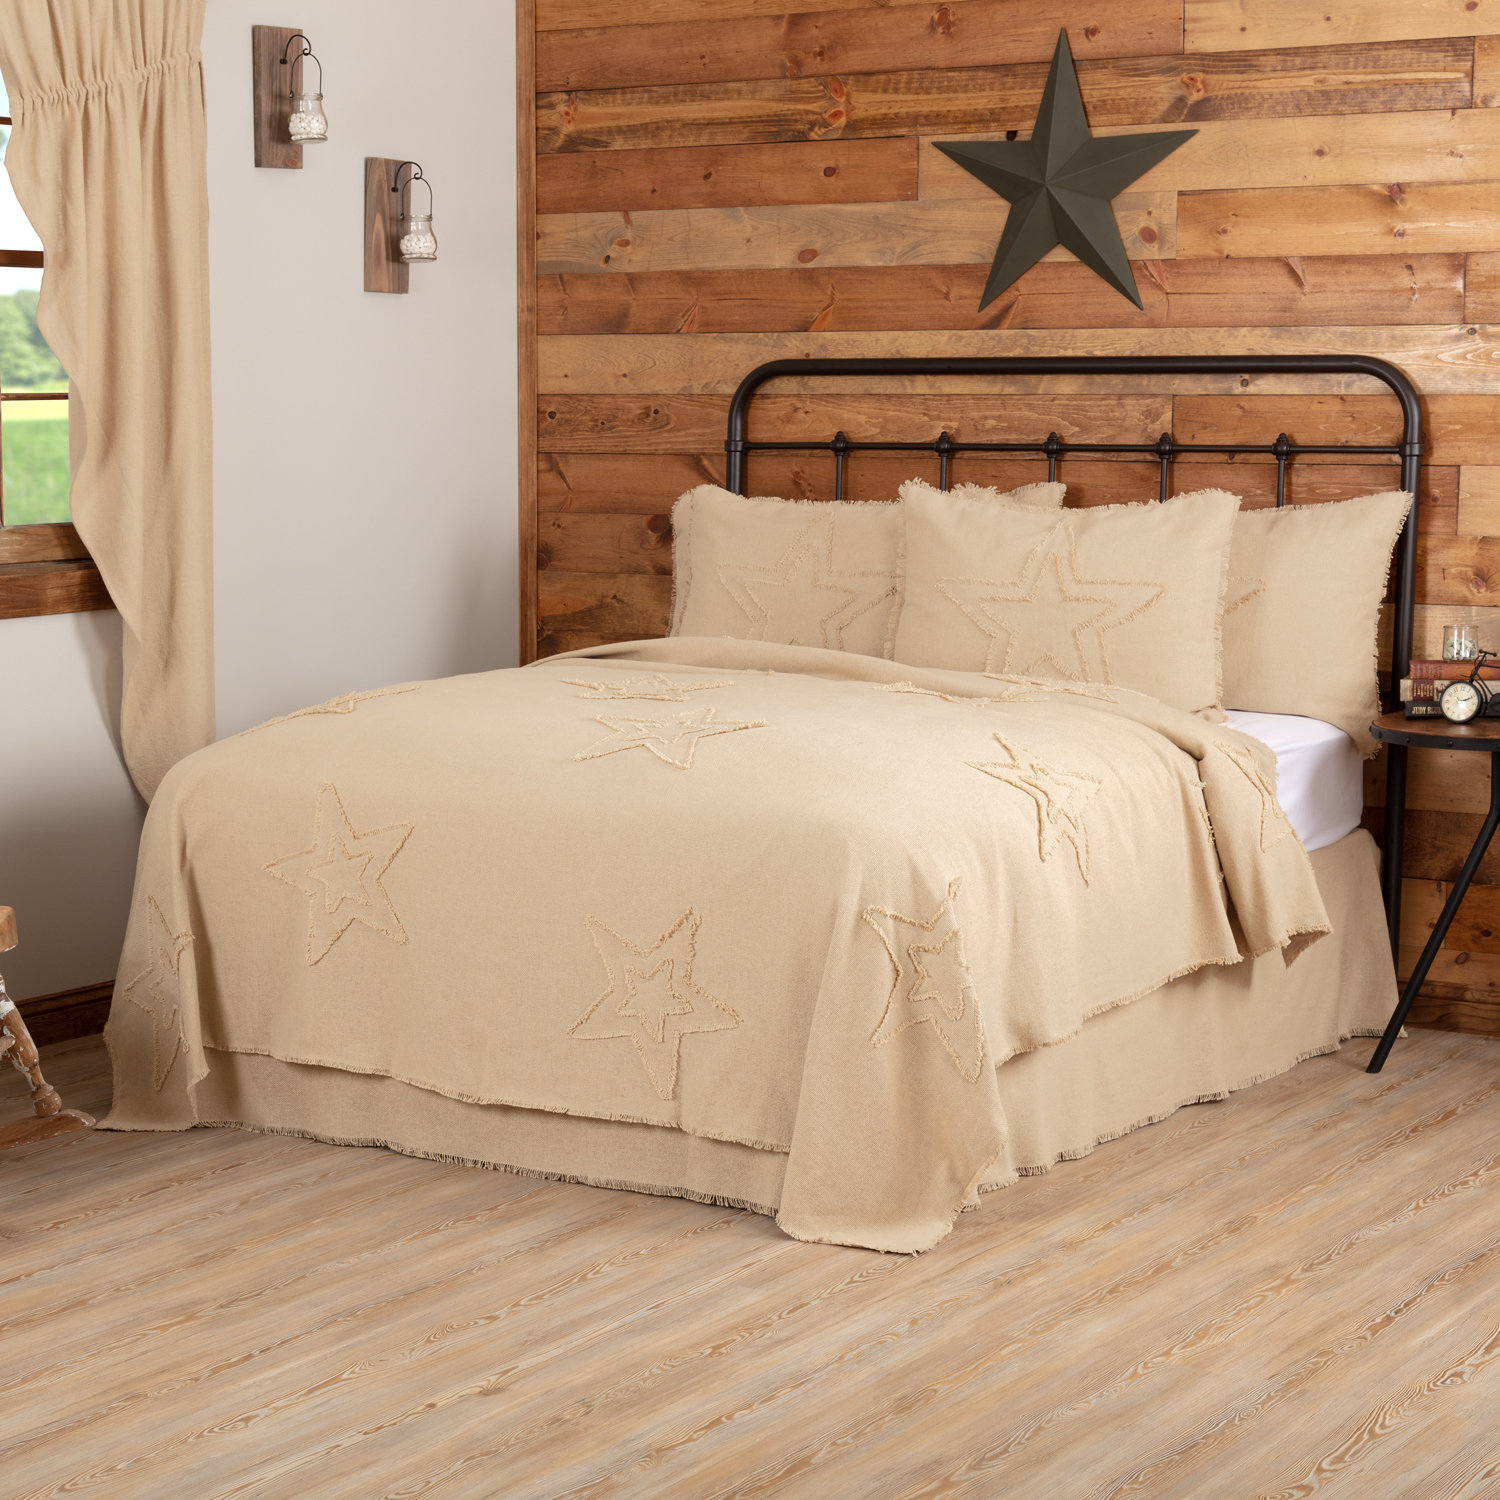 Burlap Vintage Star King Coverlet 96x108